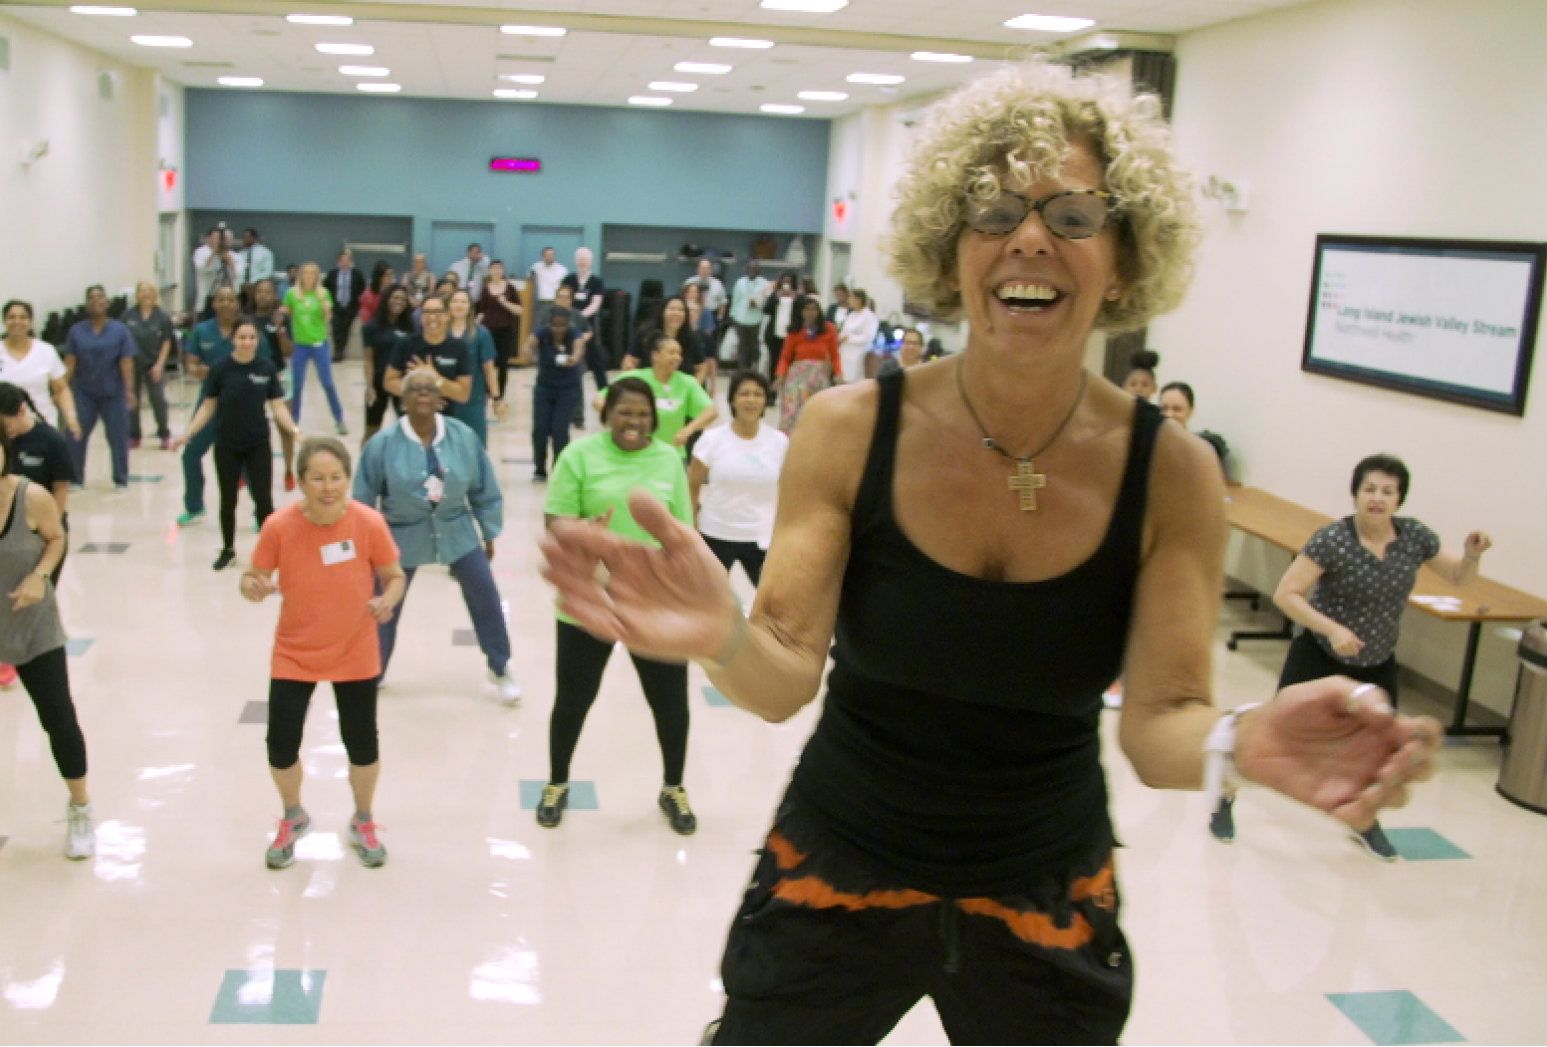 Margaret Tapogna leads a crowd at Long Island Jewish Valley Stream Hospital during her Zumba class.